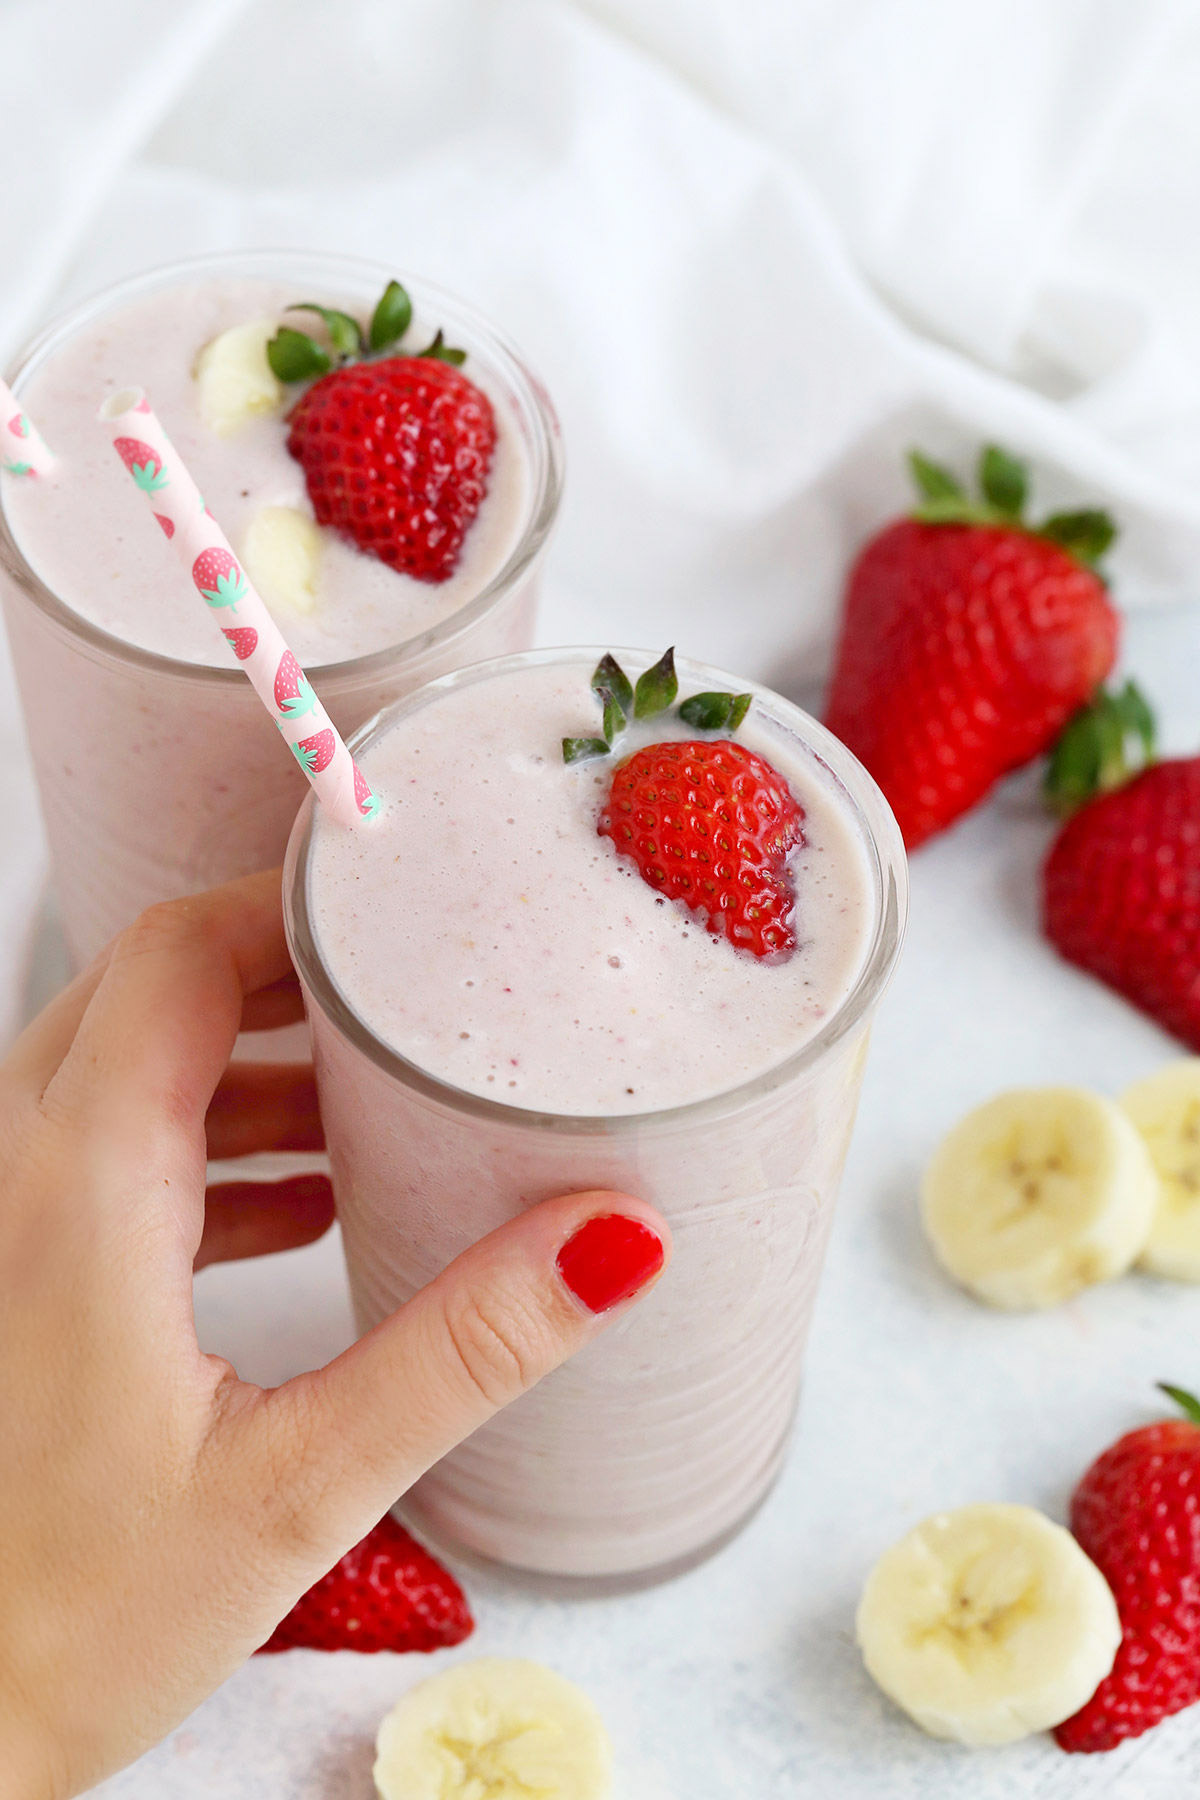 Strawberry Banana Smoothie from One Lovely Life